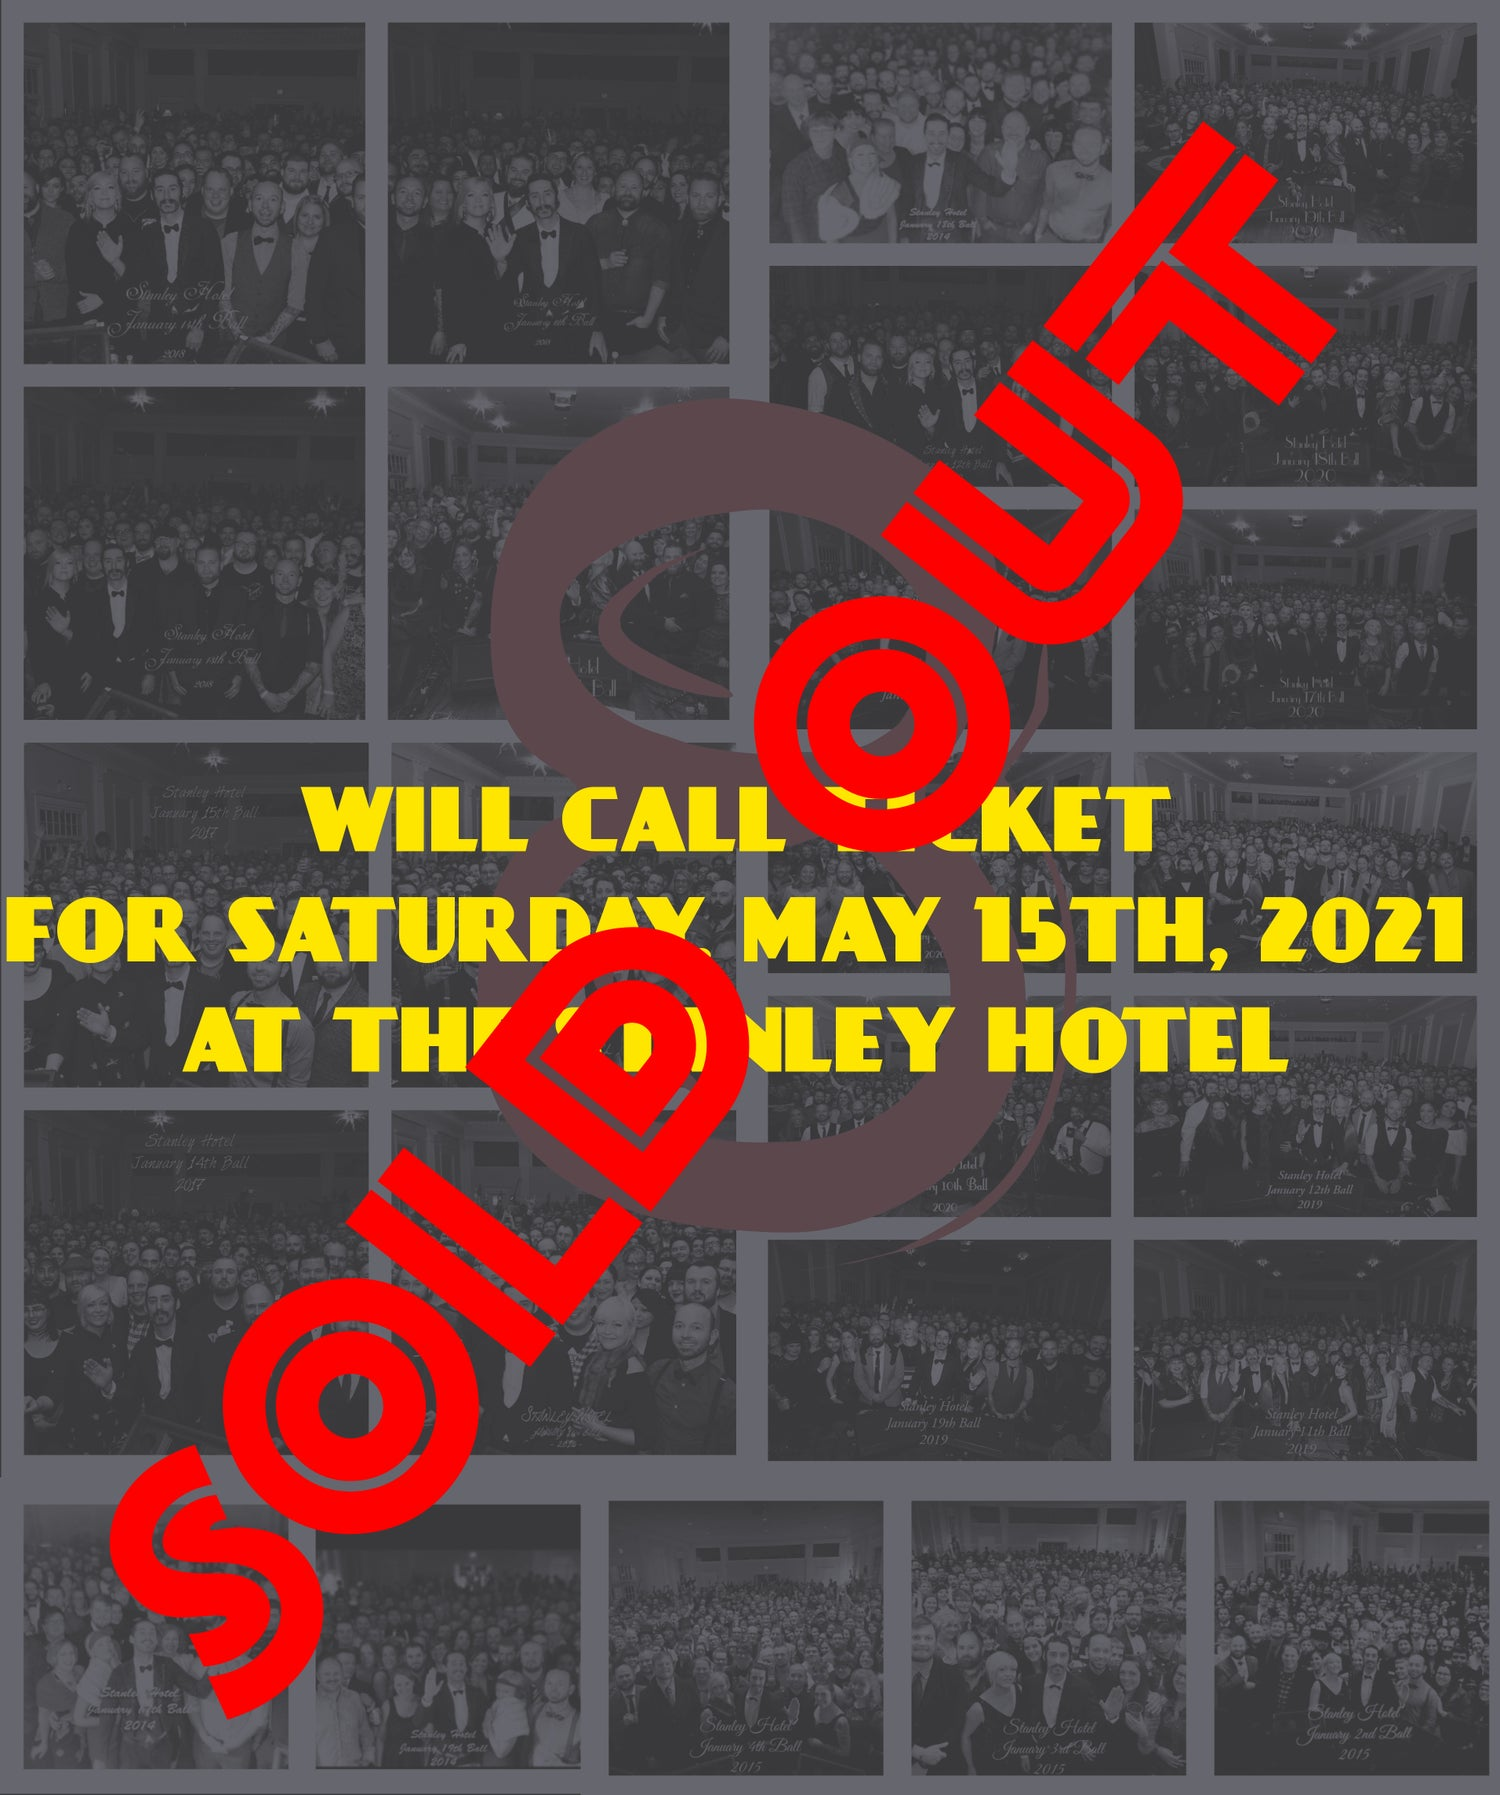 Image of Will call ticket for Saturday May 15, 2021 show at The Stanley Hotel